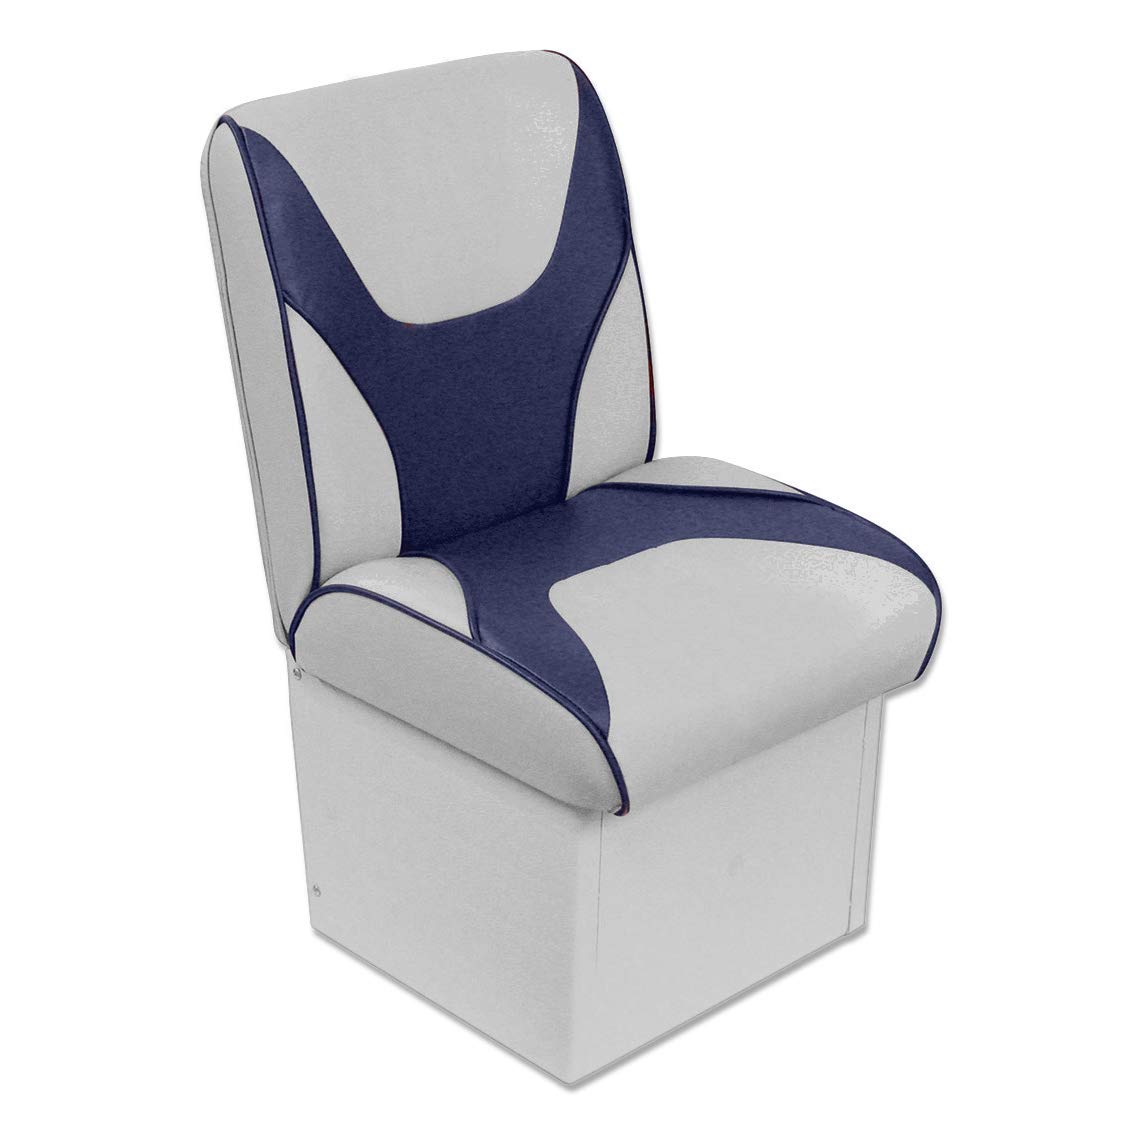 Overton's Deluxe Jump Seat with 8'' Base Gray/Navy by Overton's